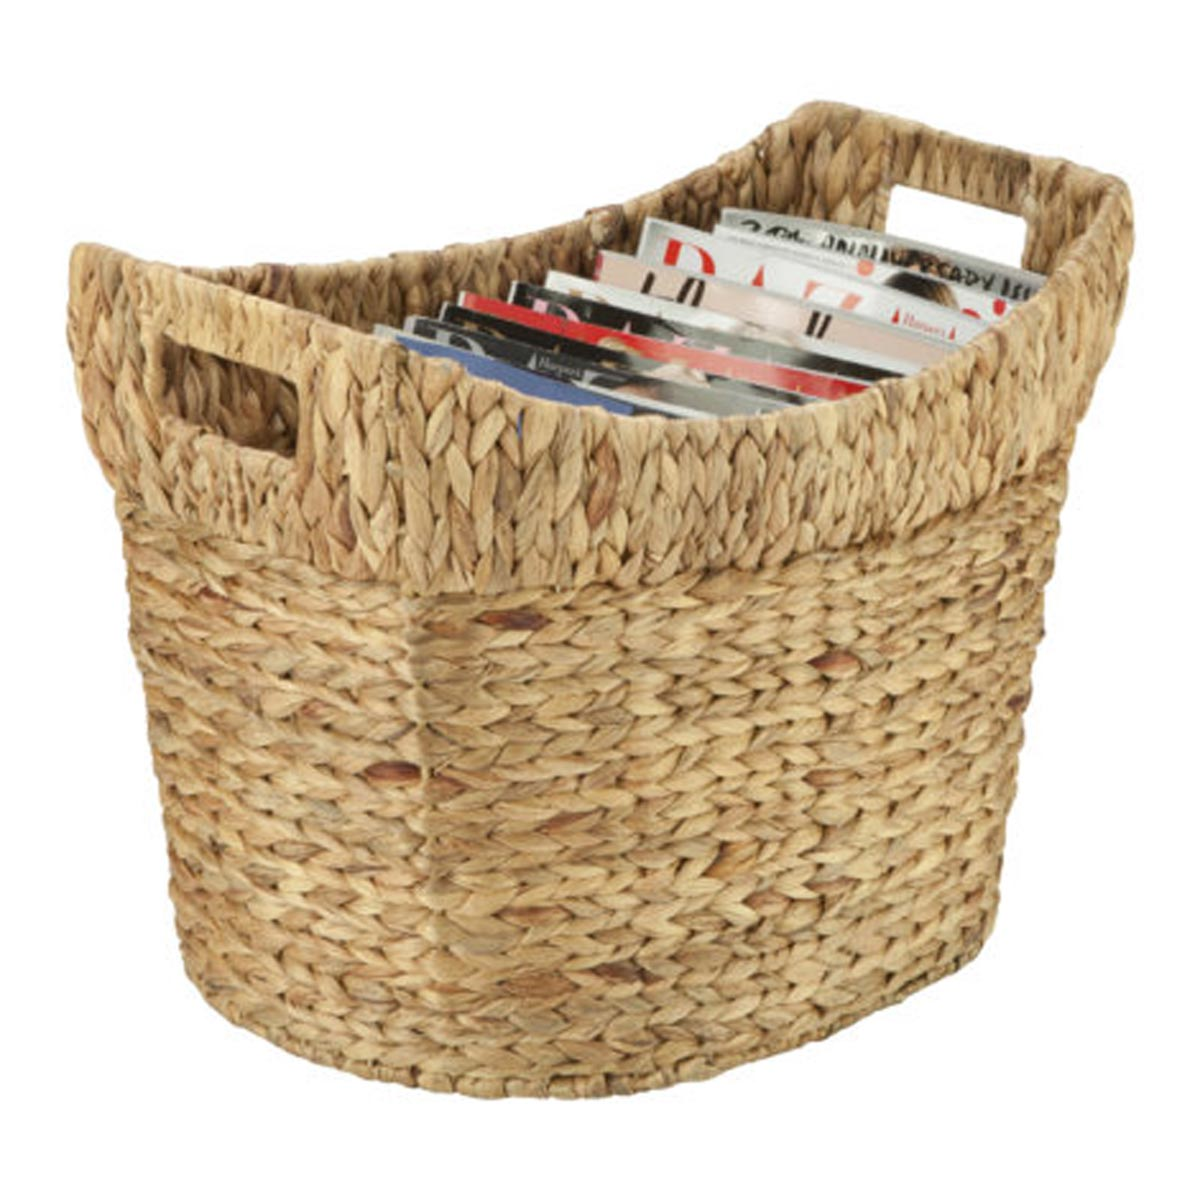 17.75 in. x 12 in. x 13.75 in. Tall Natural Hyacinth Storage Basket, Small